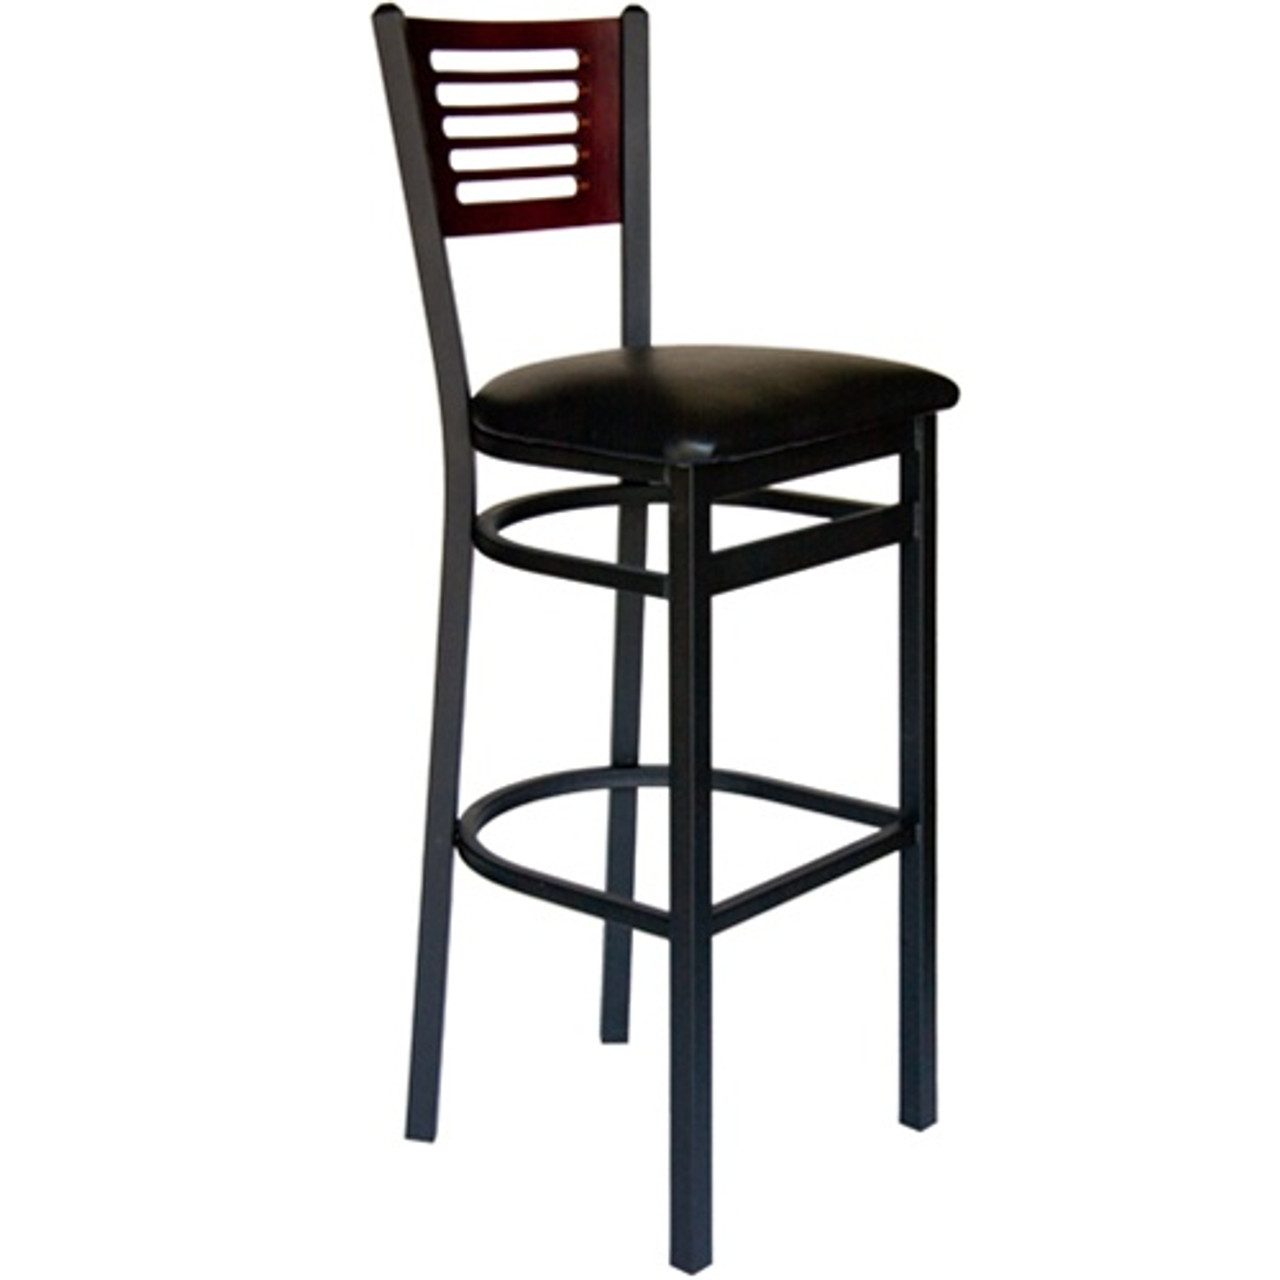 Groovy Bfm Seating Espy Black Metal Slotted Wood Back Restaurant Bar Stool With Vinyl Seat 2151B Sbv Alphanode Cool Chair Designs And Ideas Alphanodeonline